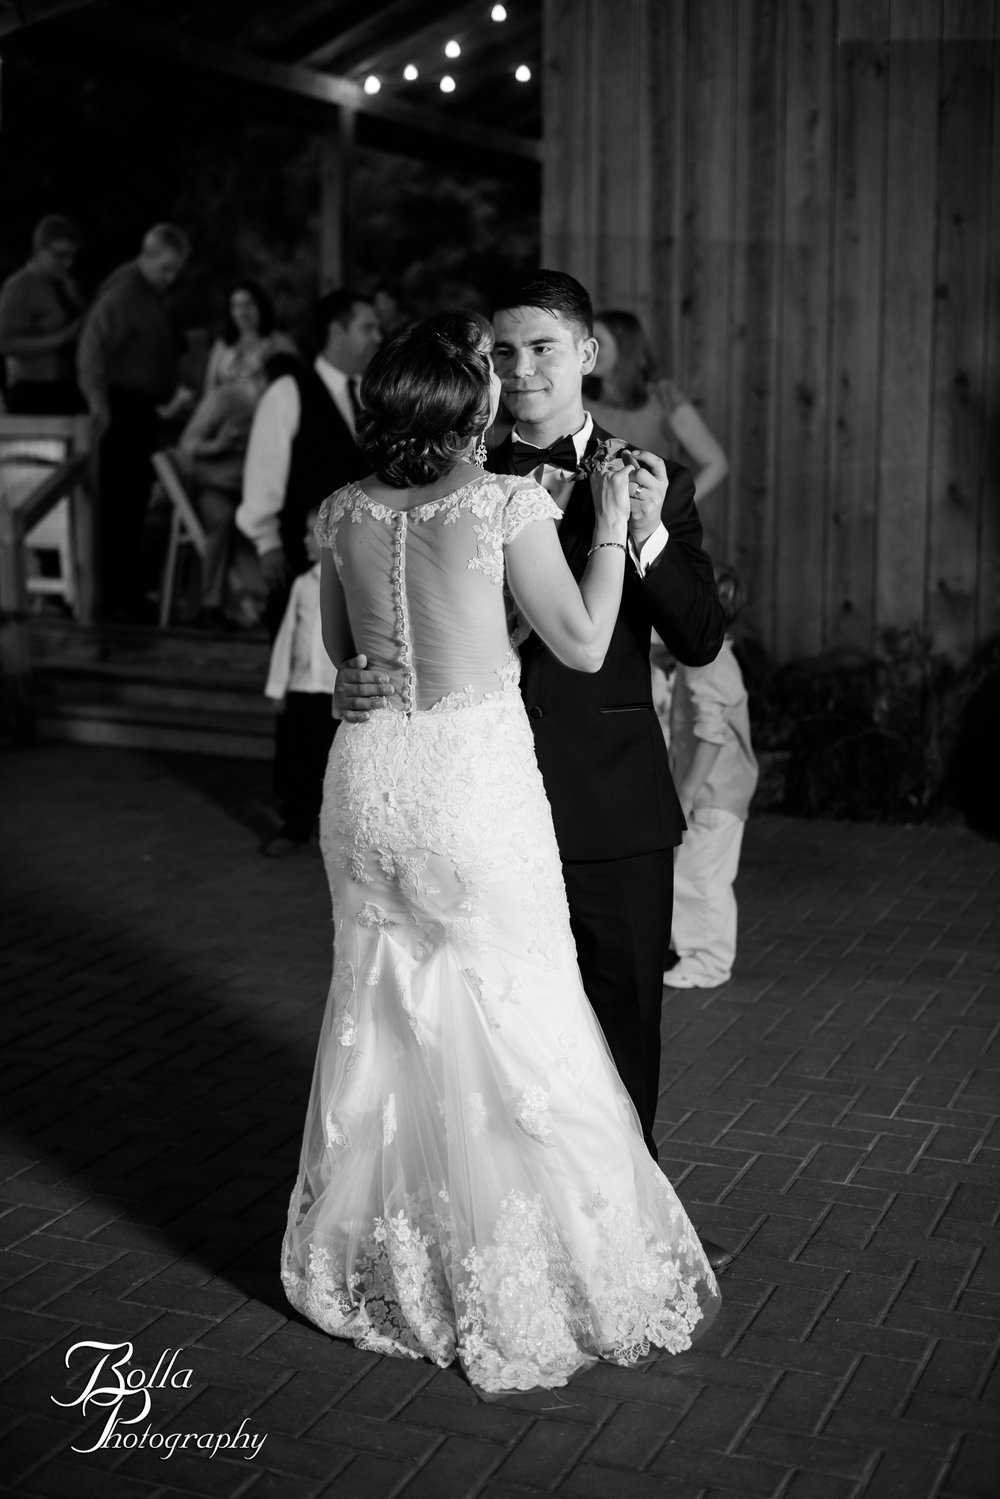 Bolla_photography_edwardsville_wedding_photographer_st_louis_weddings_Chaumette_winery_Mikusch-0562-2.jpg